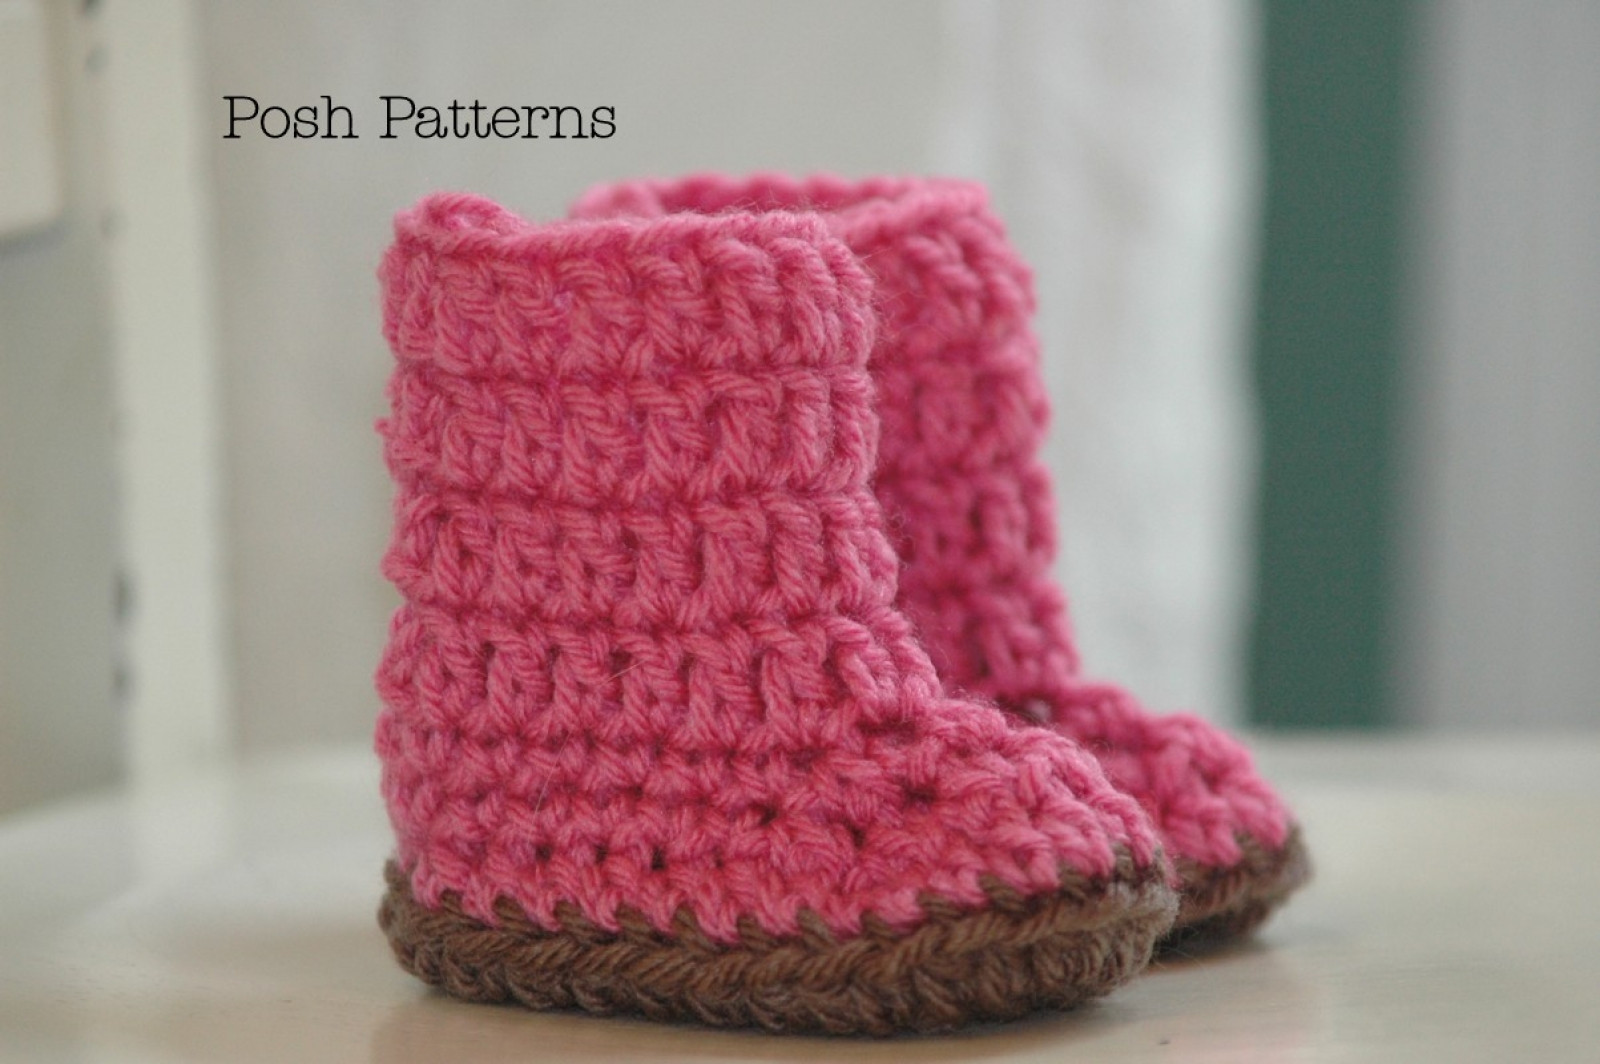 New Crochet Pattern Easy Baby Boots Slippers Crochet Baby socks Of Beautiful Crochet Baby Booties Patterns for Sweet Little Feet Crochet Baby socks